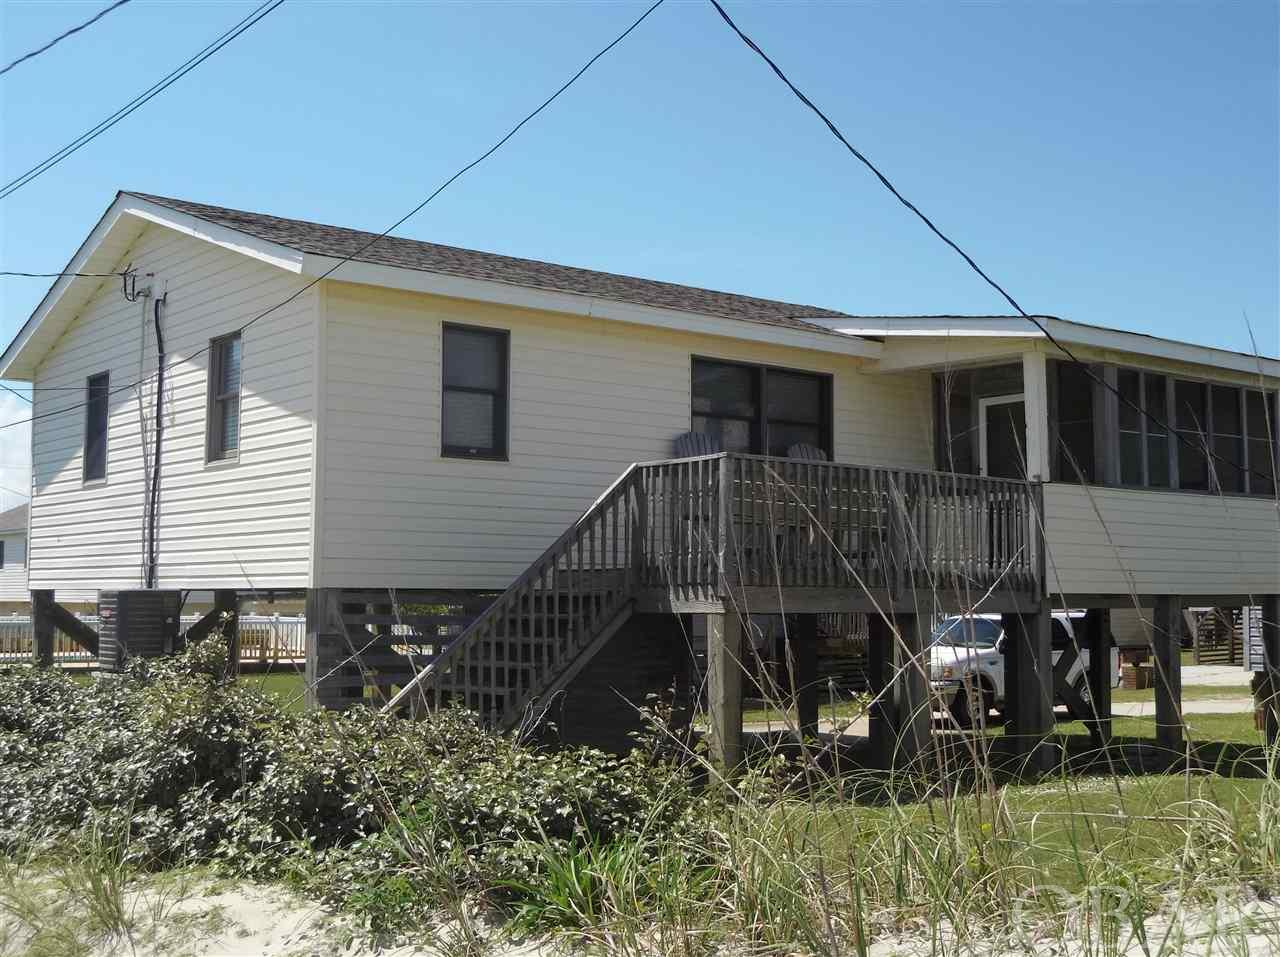 10321 1 Old Oregon Inlet Road,Nags Head,NC 27959,3 Bedrooms Bedrooms,1 BathroomBathrooms,Residential,Old Oregon Inlet Road,96193